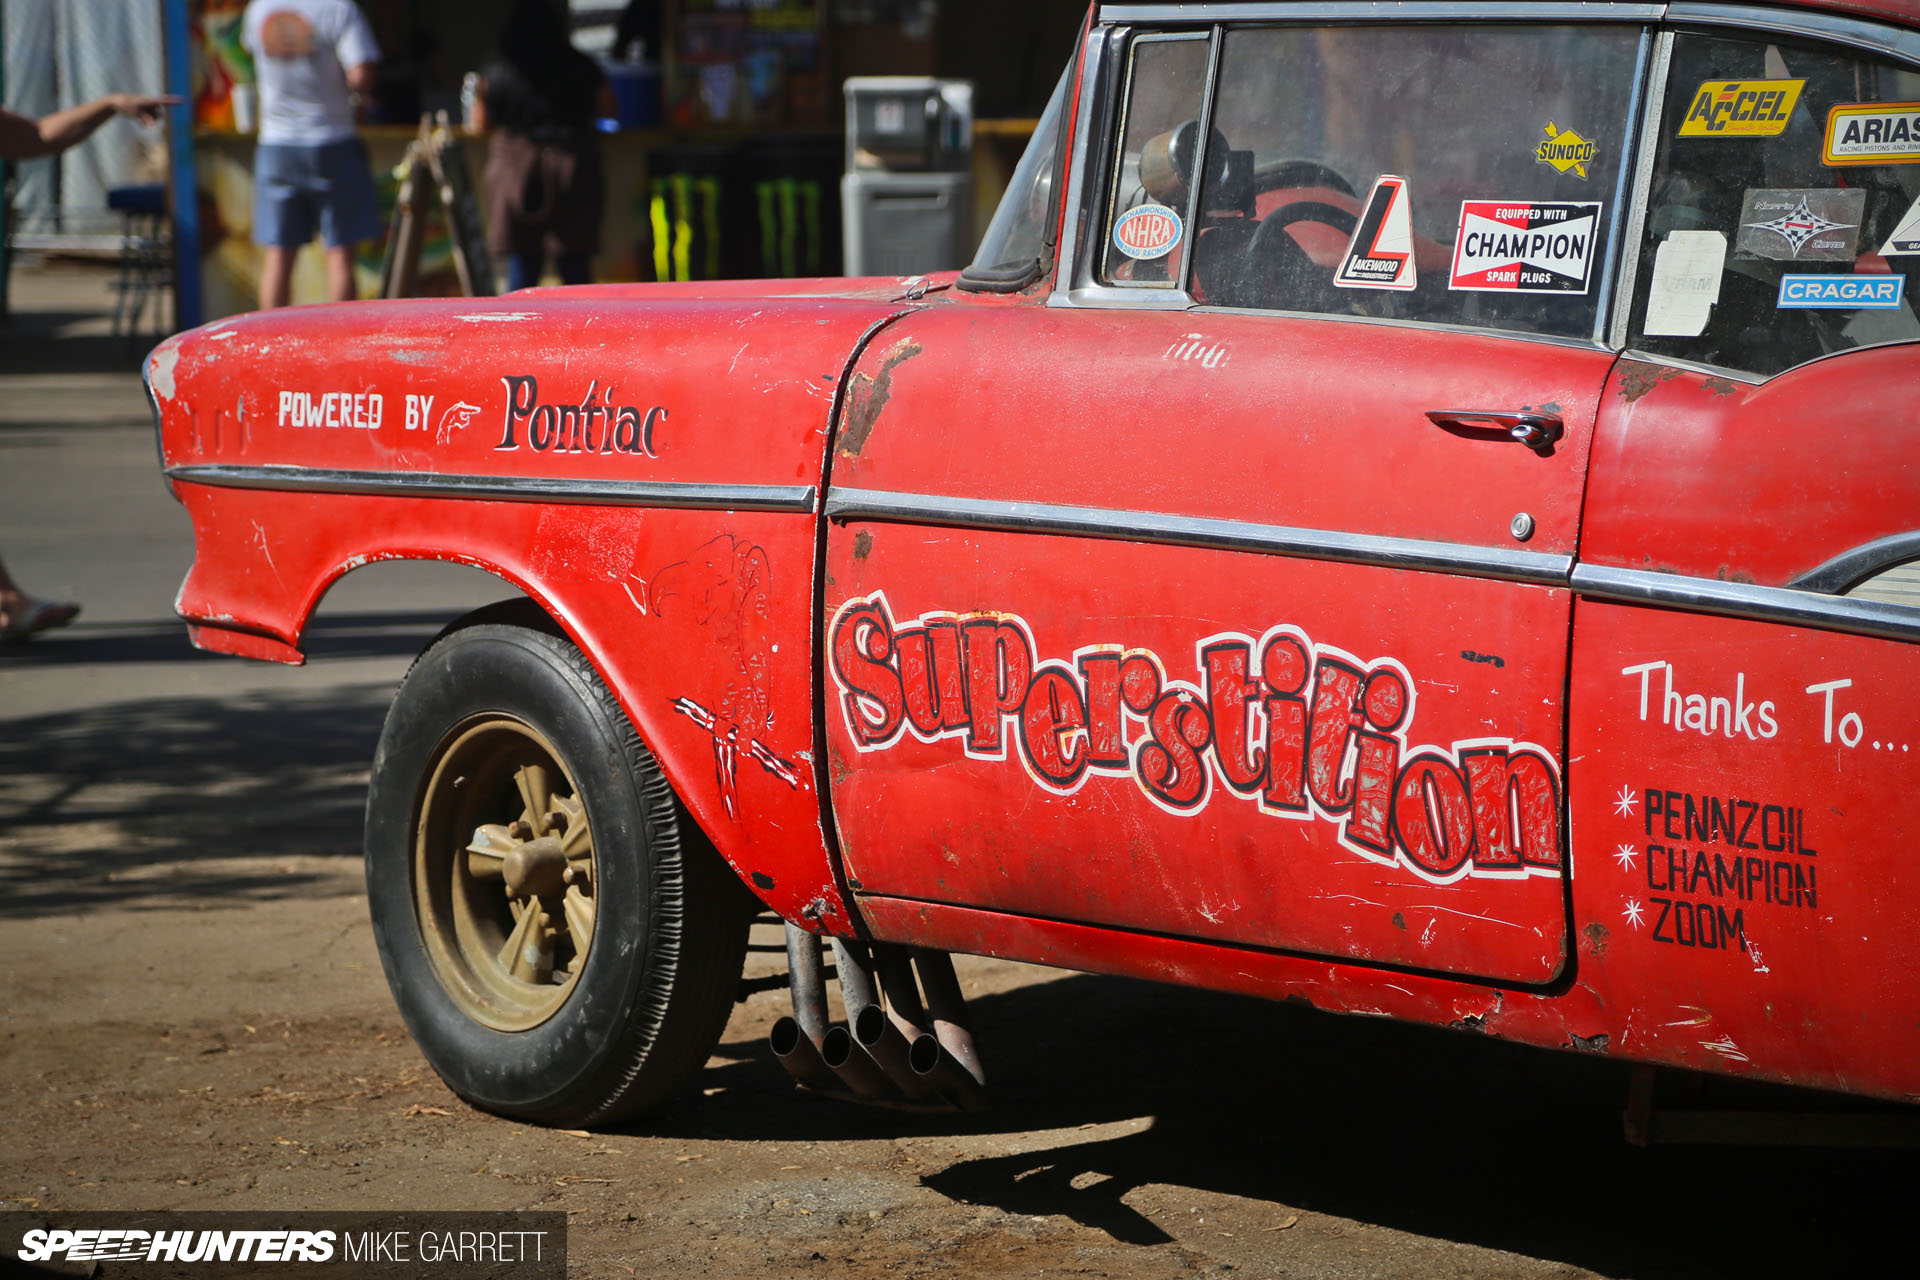 Search Cars: The Barn Find Racer